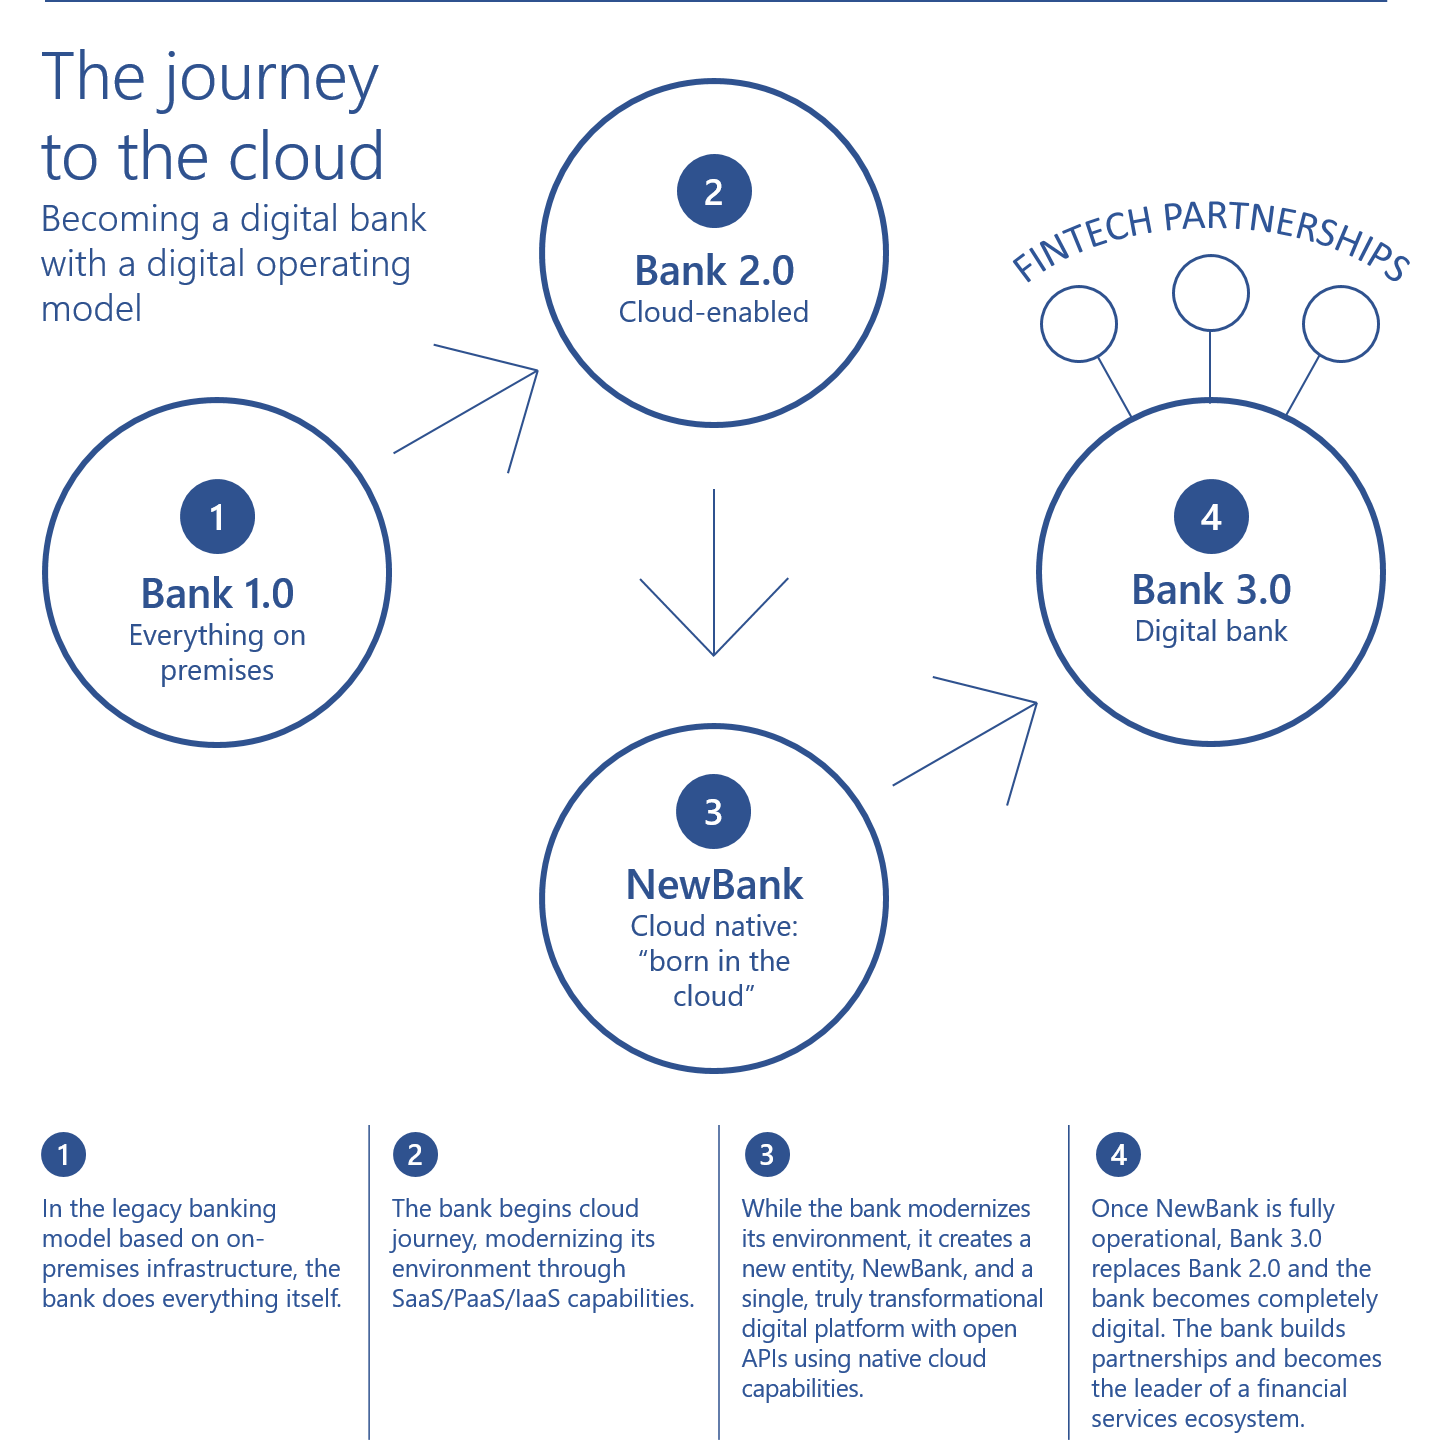 The Journey to the cloud